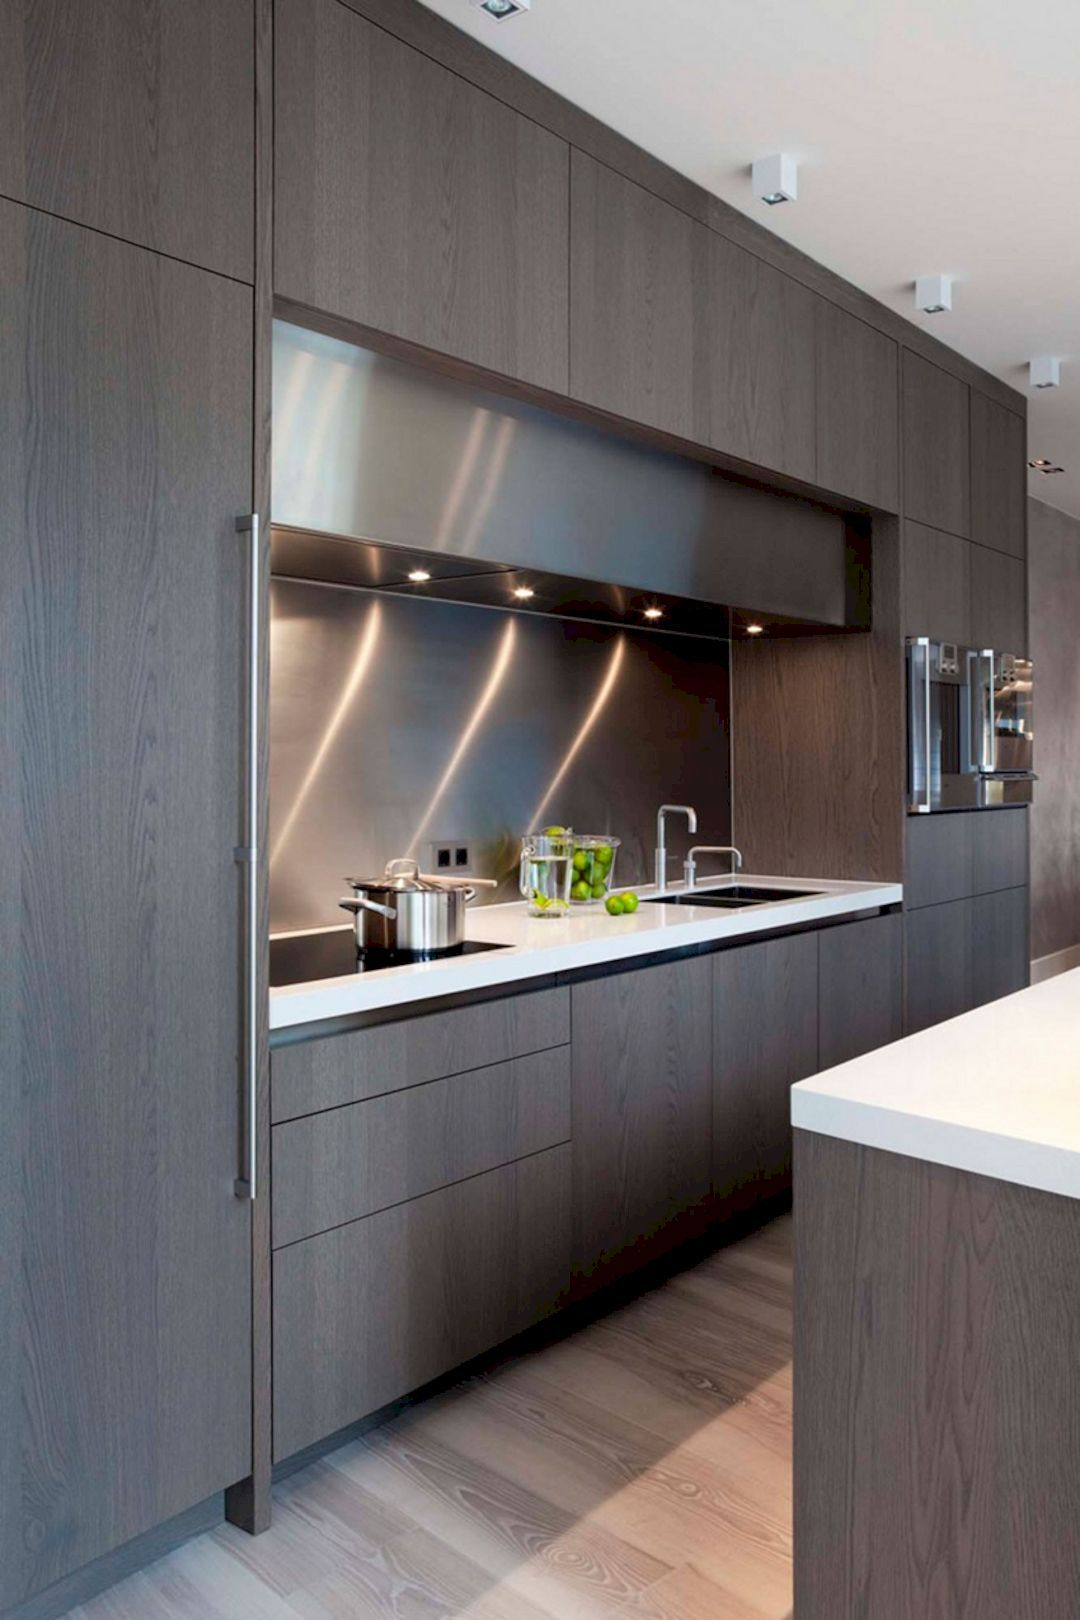 Marvelous Stylish Modern Kitchen Cabinet: 127 Design Ideas |